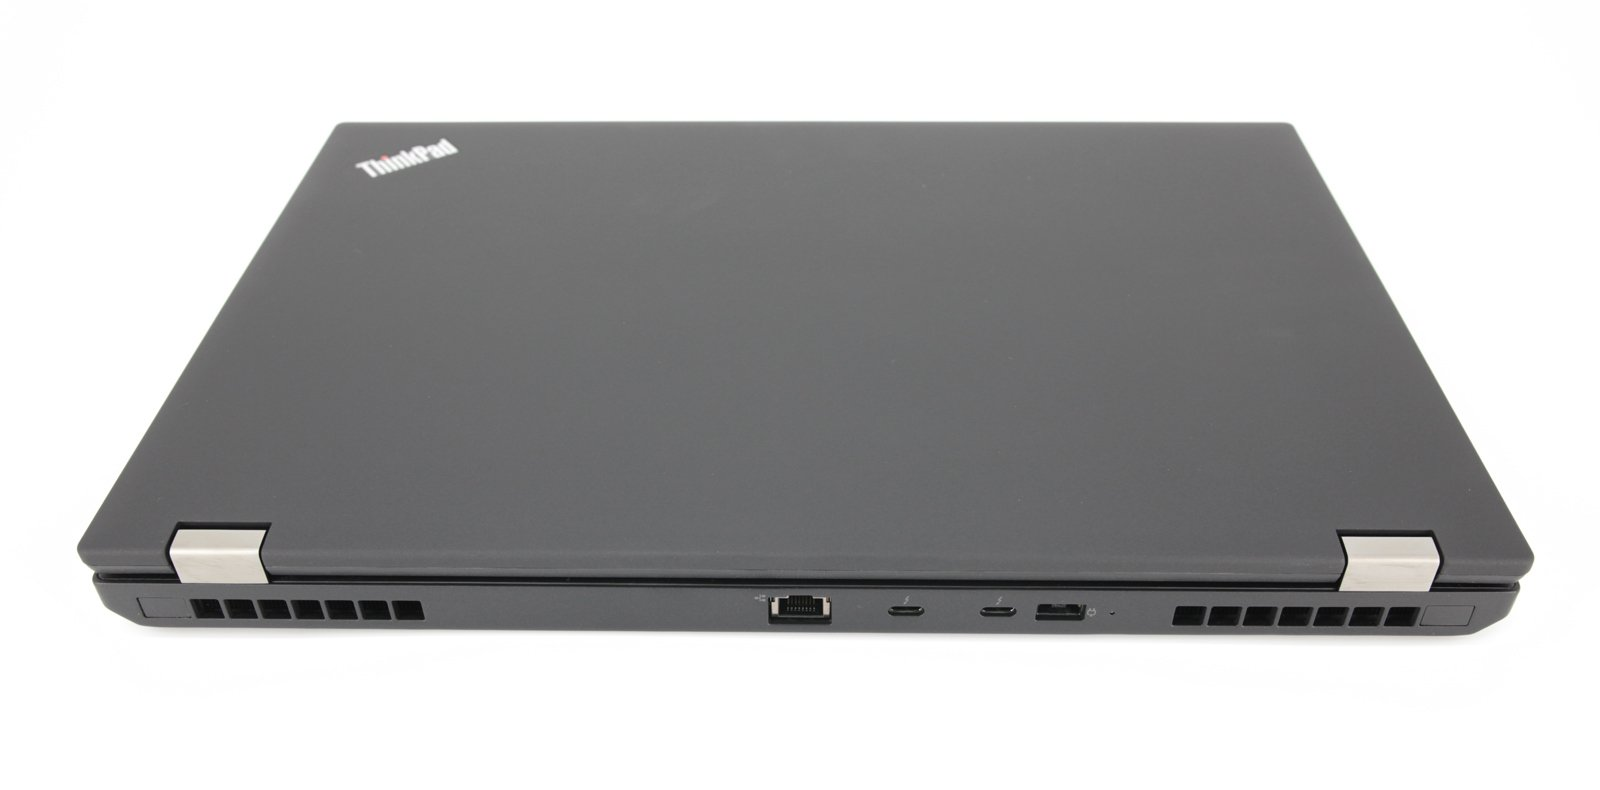 Lenovo ThinkPad P53 Laptop: 9th Gen i7, 512GB SSD, 16GB, Quadro T2000, Warranty - CruiseTech